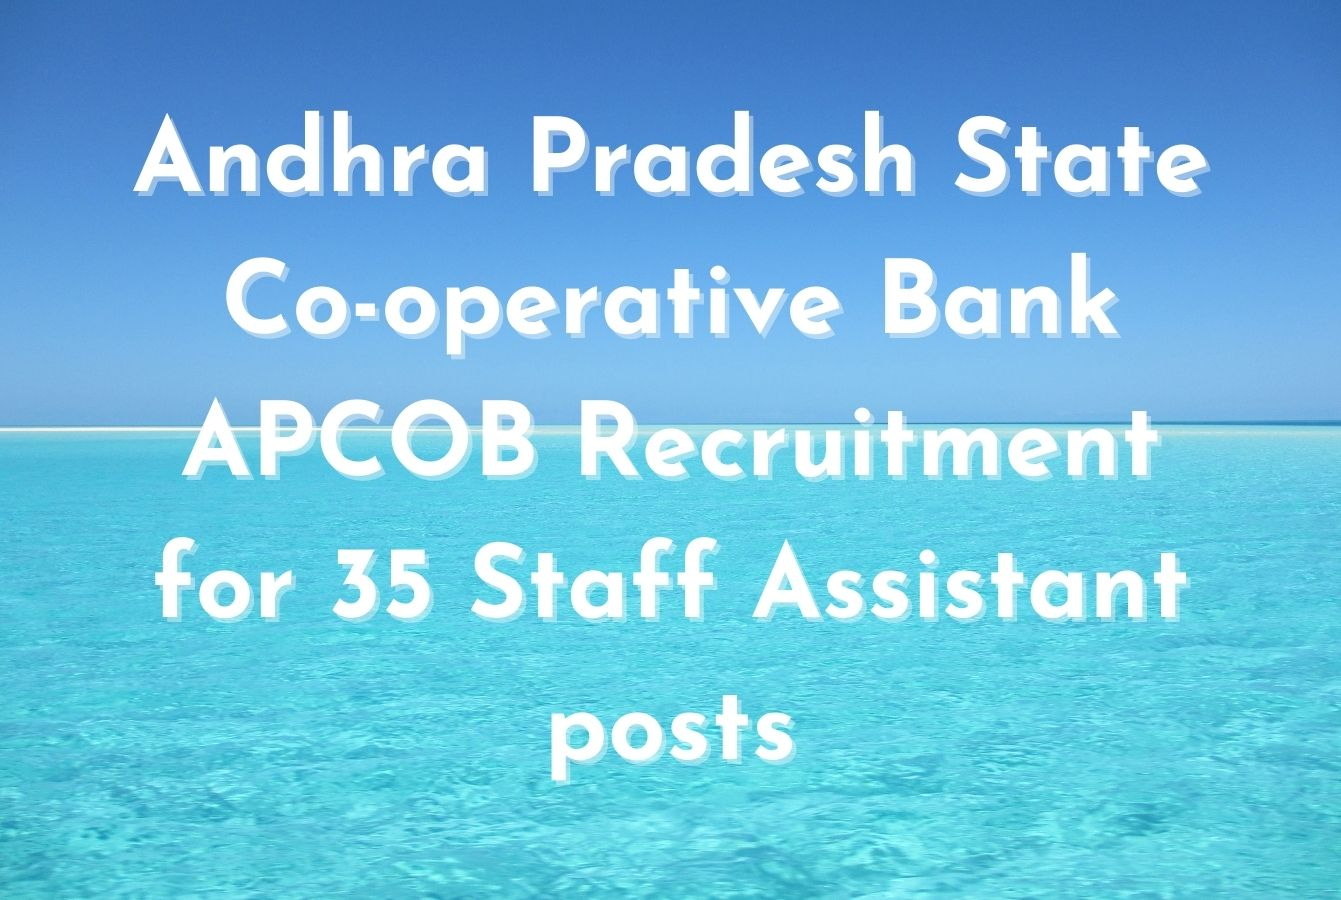 Andhra Pradesh State Co-operative Bank APCOB Recruitment for 35 Staff Assistant posts